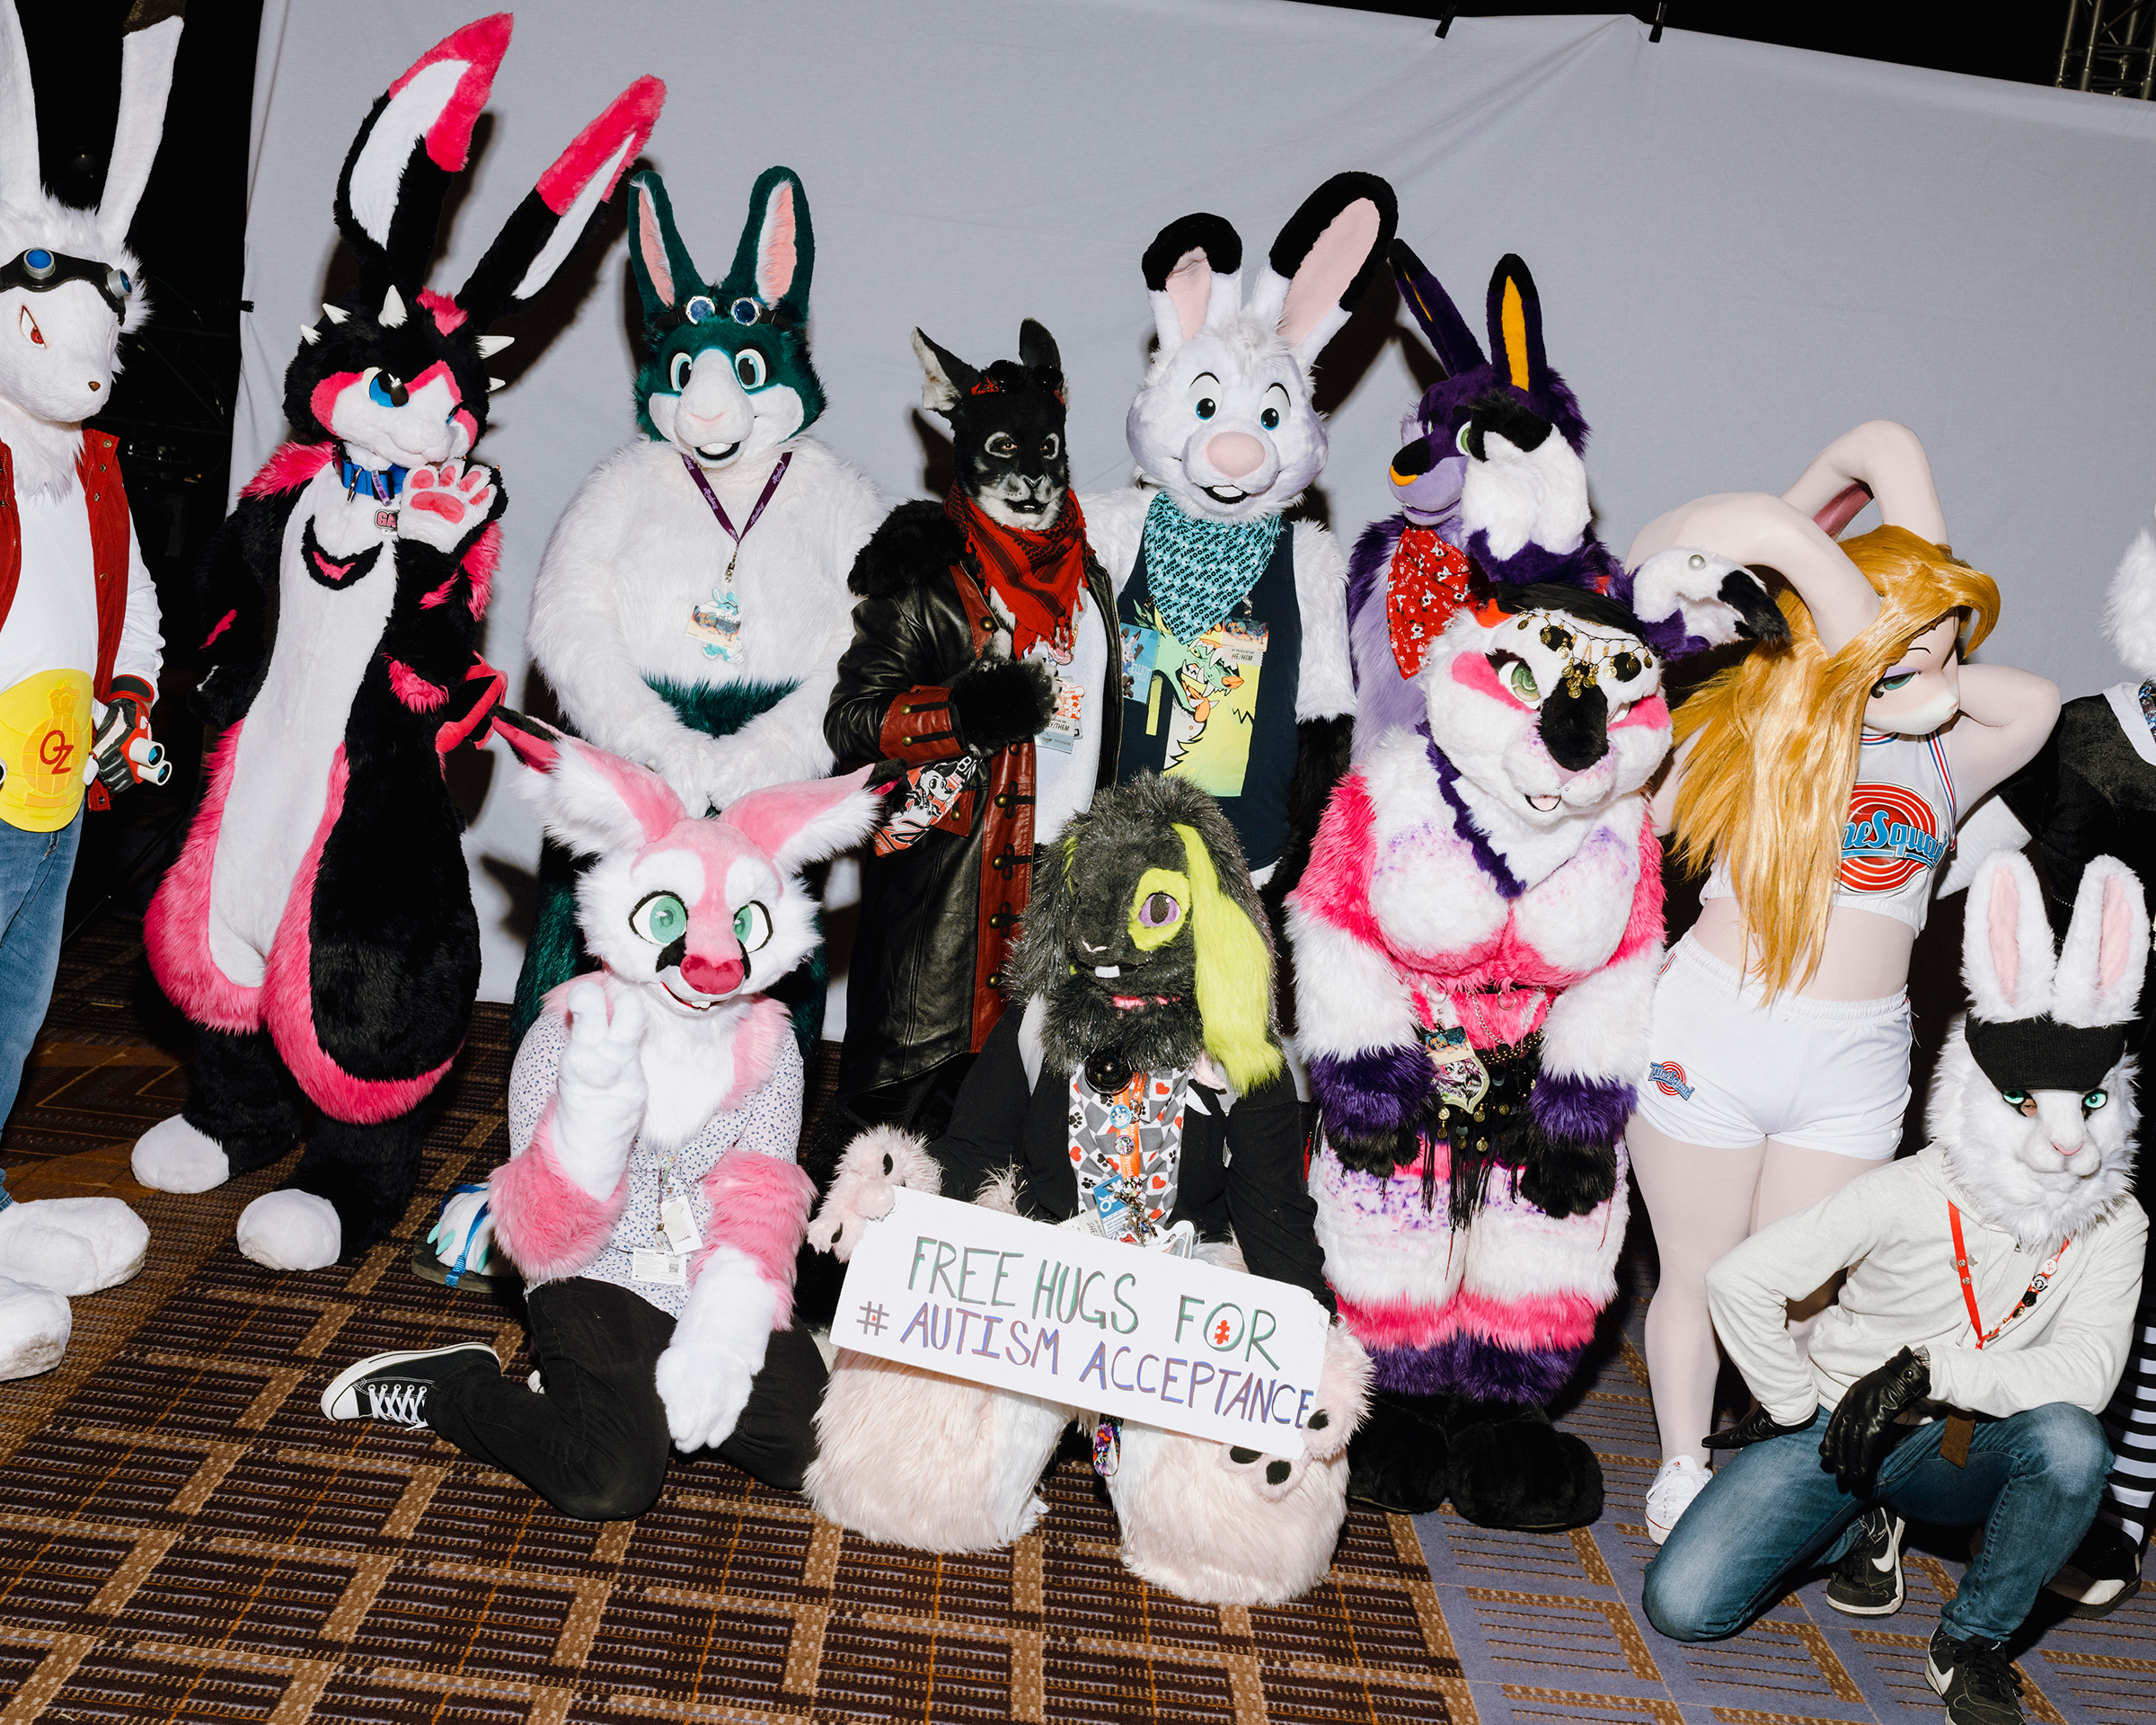 9829 - December 4th, 2019 - Rosemont, IL - Midwest Furr Fest at Donald E. Stephens Convention Center. Furries gathering for a group photoshoot within their own specie categories.